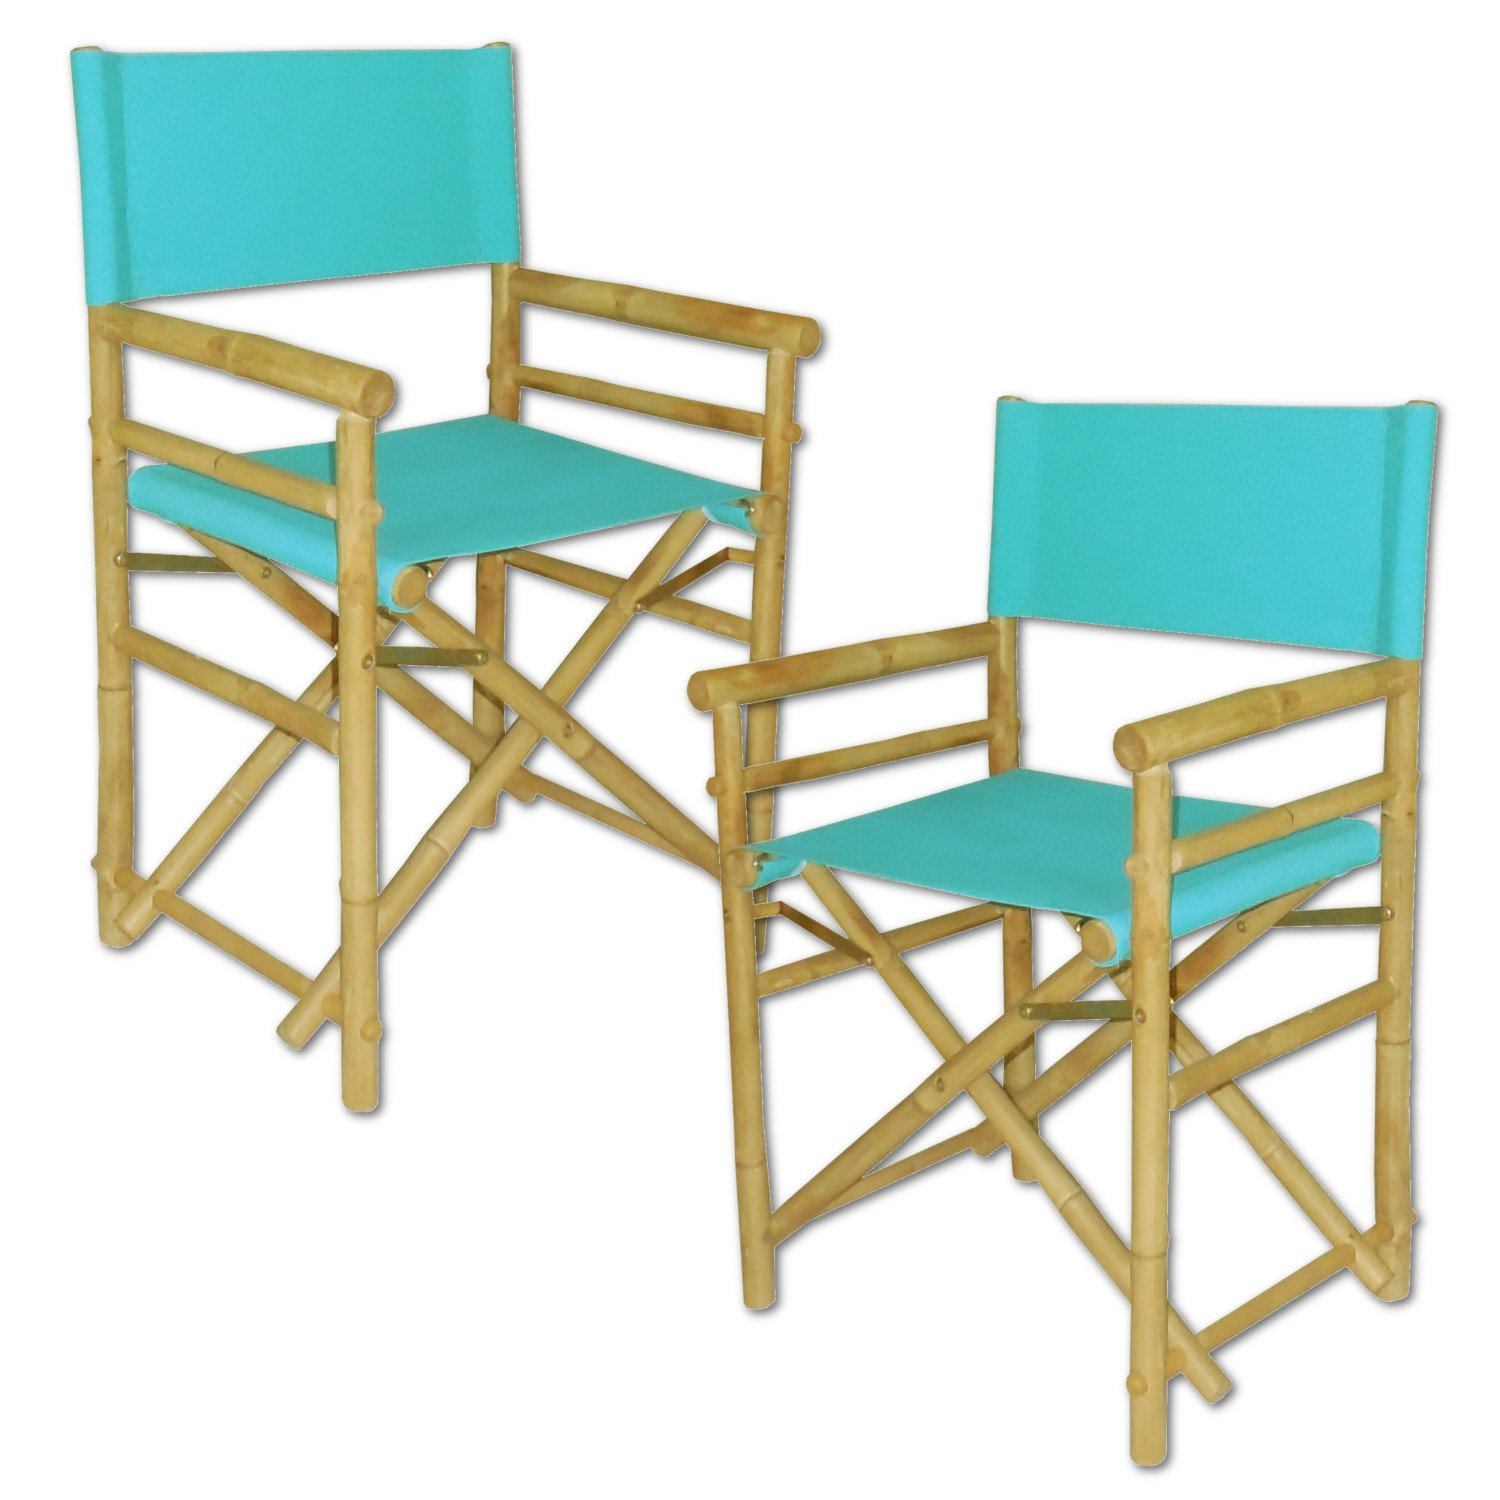 Zew Hand Crafted Foldable Bamboo Director's Chair with Treated Comfortable Canvas, Set of 2 Folding Chairs, Aqua